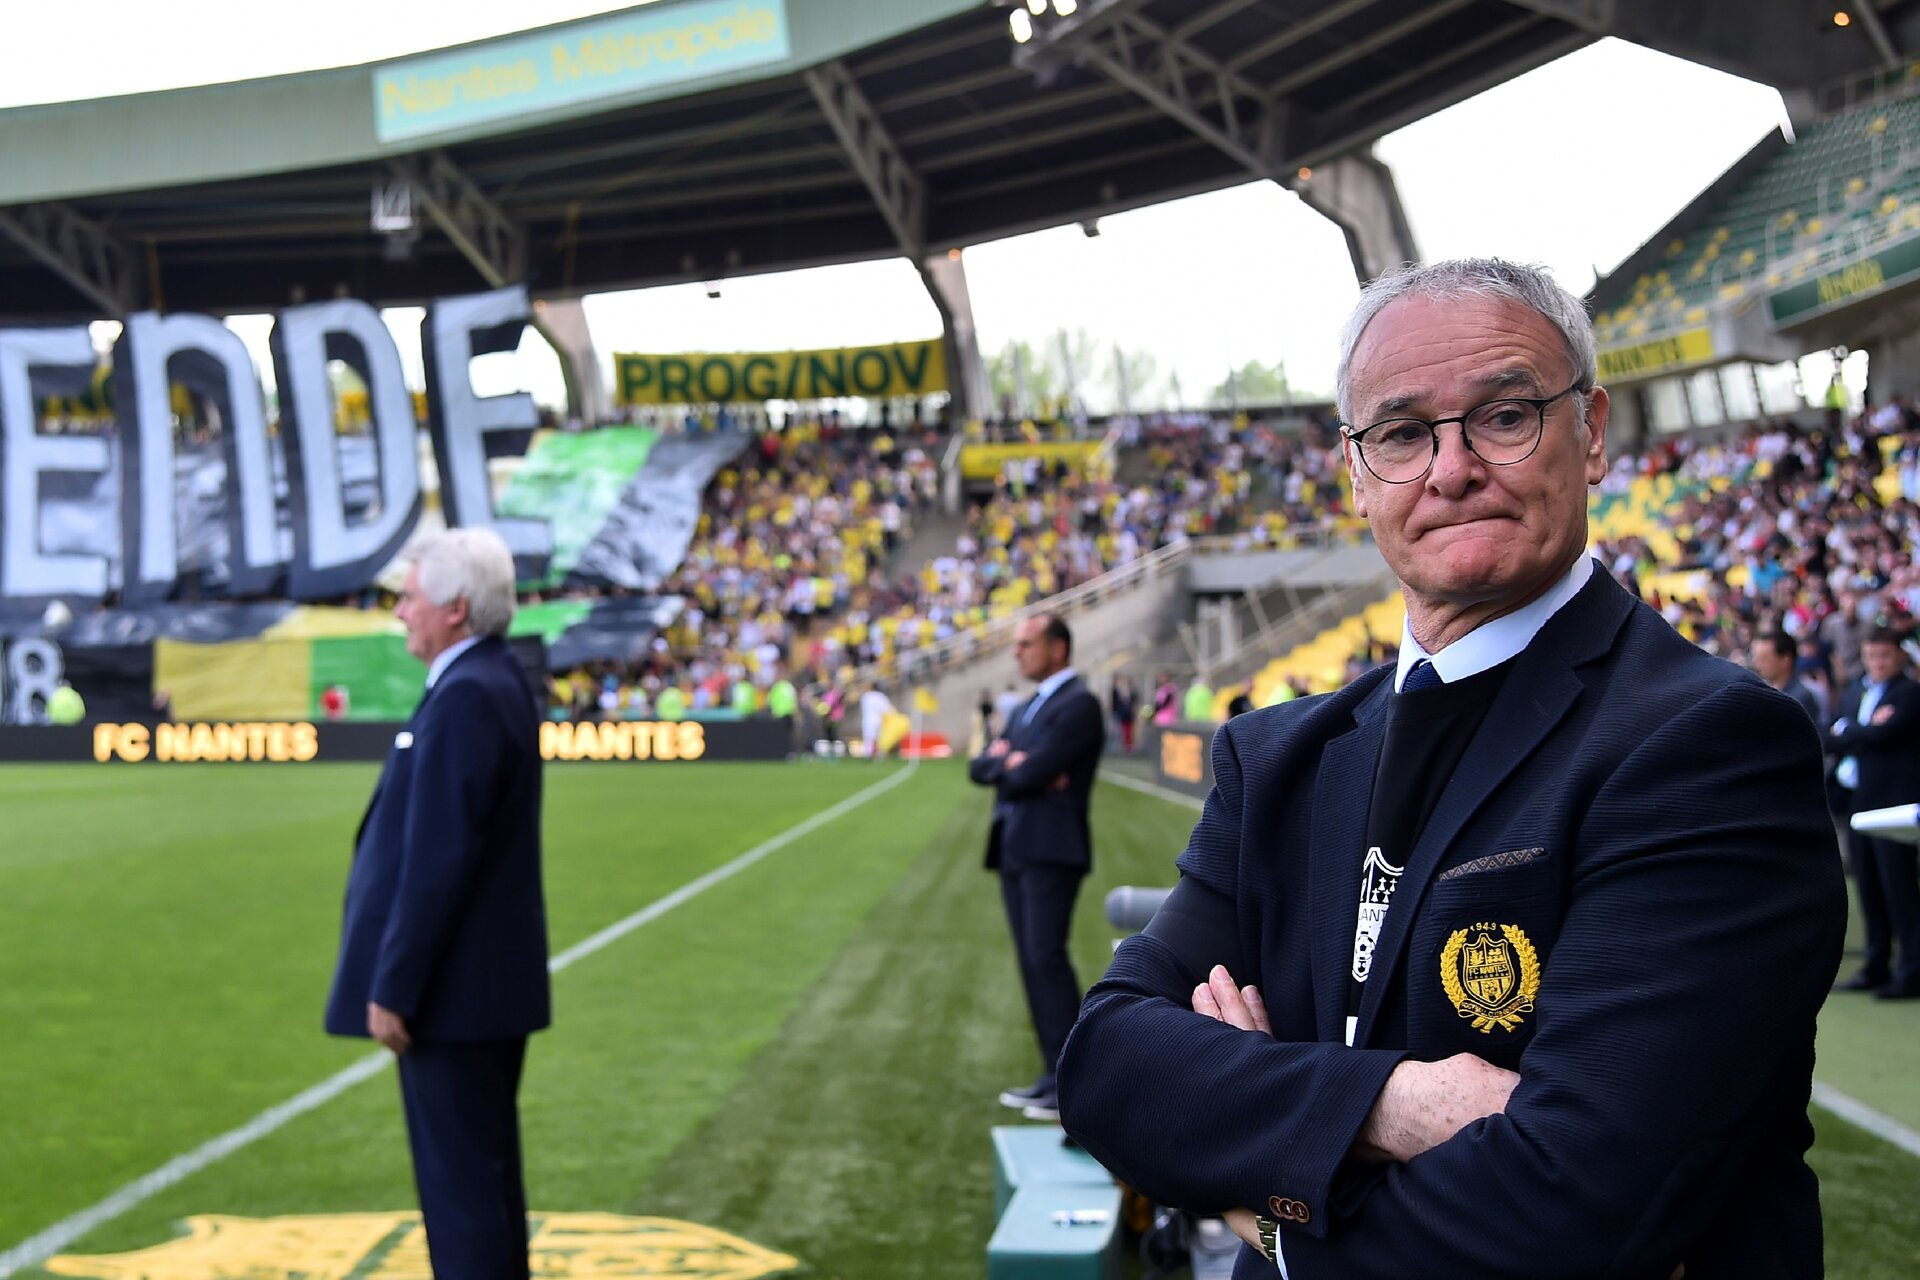 Nantes' Italian head coach Claudio Ranieri (R) looks on prior to the French L1 football match between Nantes (FC) and Montpellier (MHFC), on May 6, 2018, at the La Beaujoire stadium in Nantes, western France. - Montpellier won to Nantes 2-0. (Photo by JEAN-FRANCOIS MONIER / AFP)        (Photo credit should read JEAN-FRANCOIS MONIER/AFP/Getty Images)